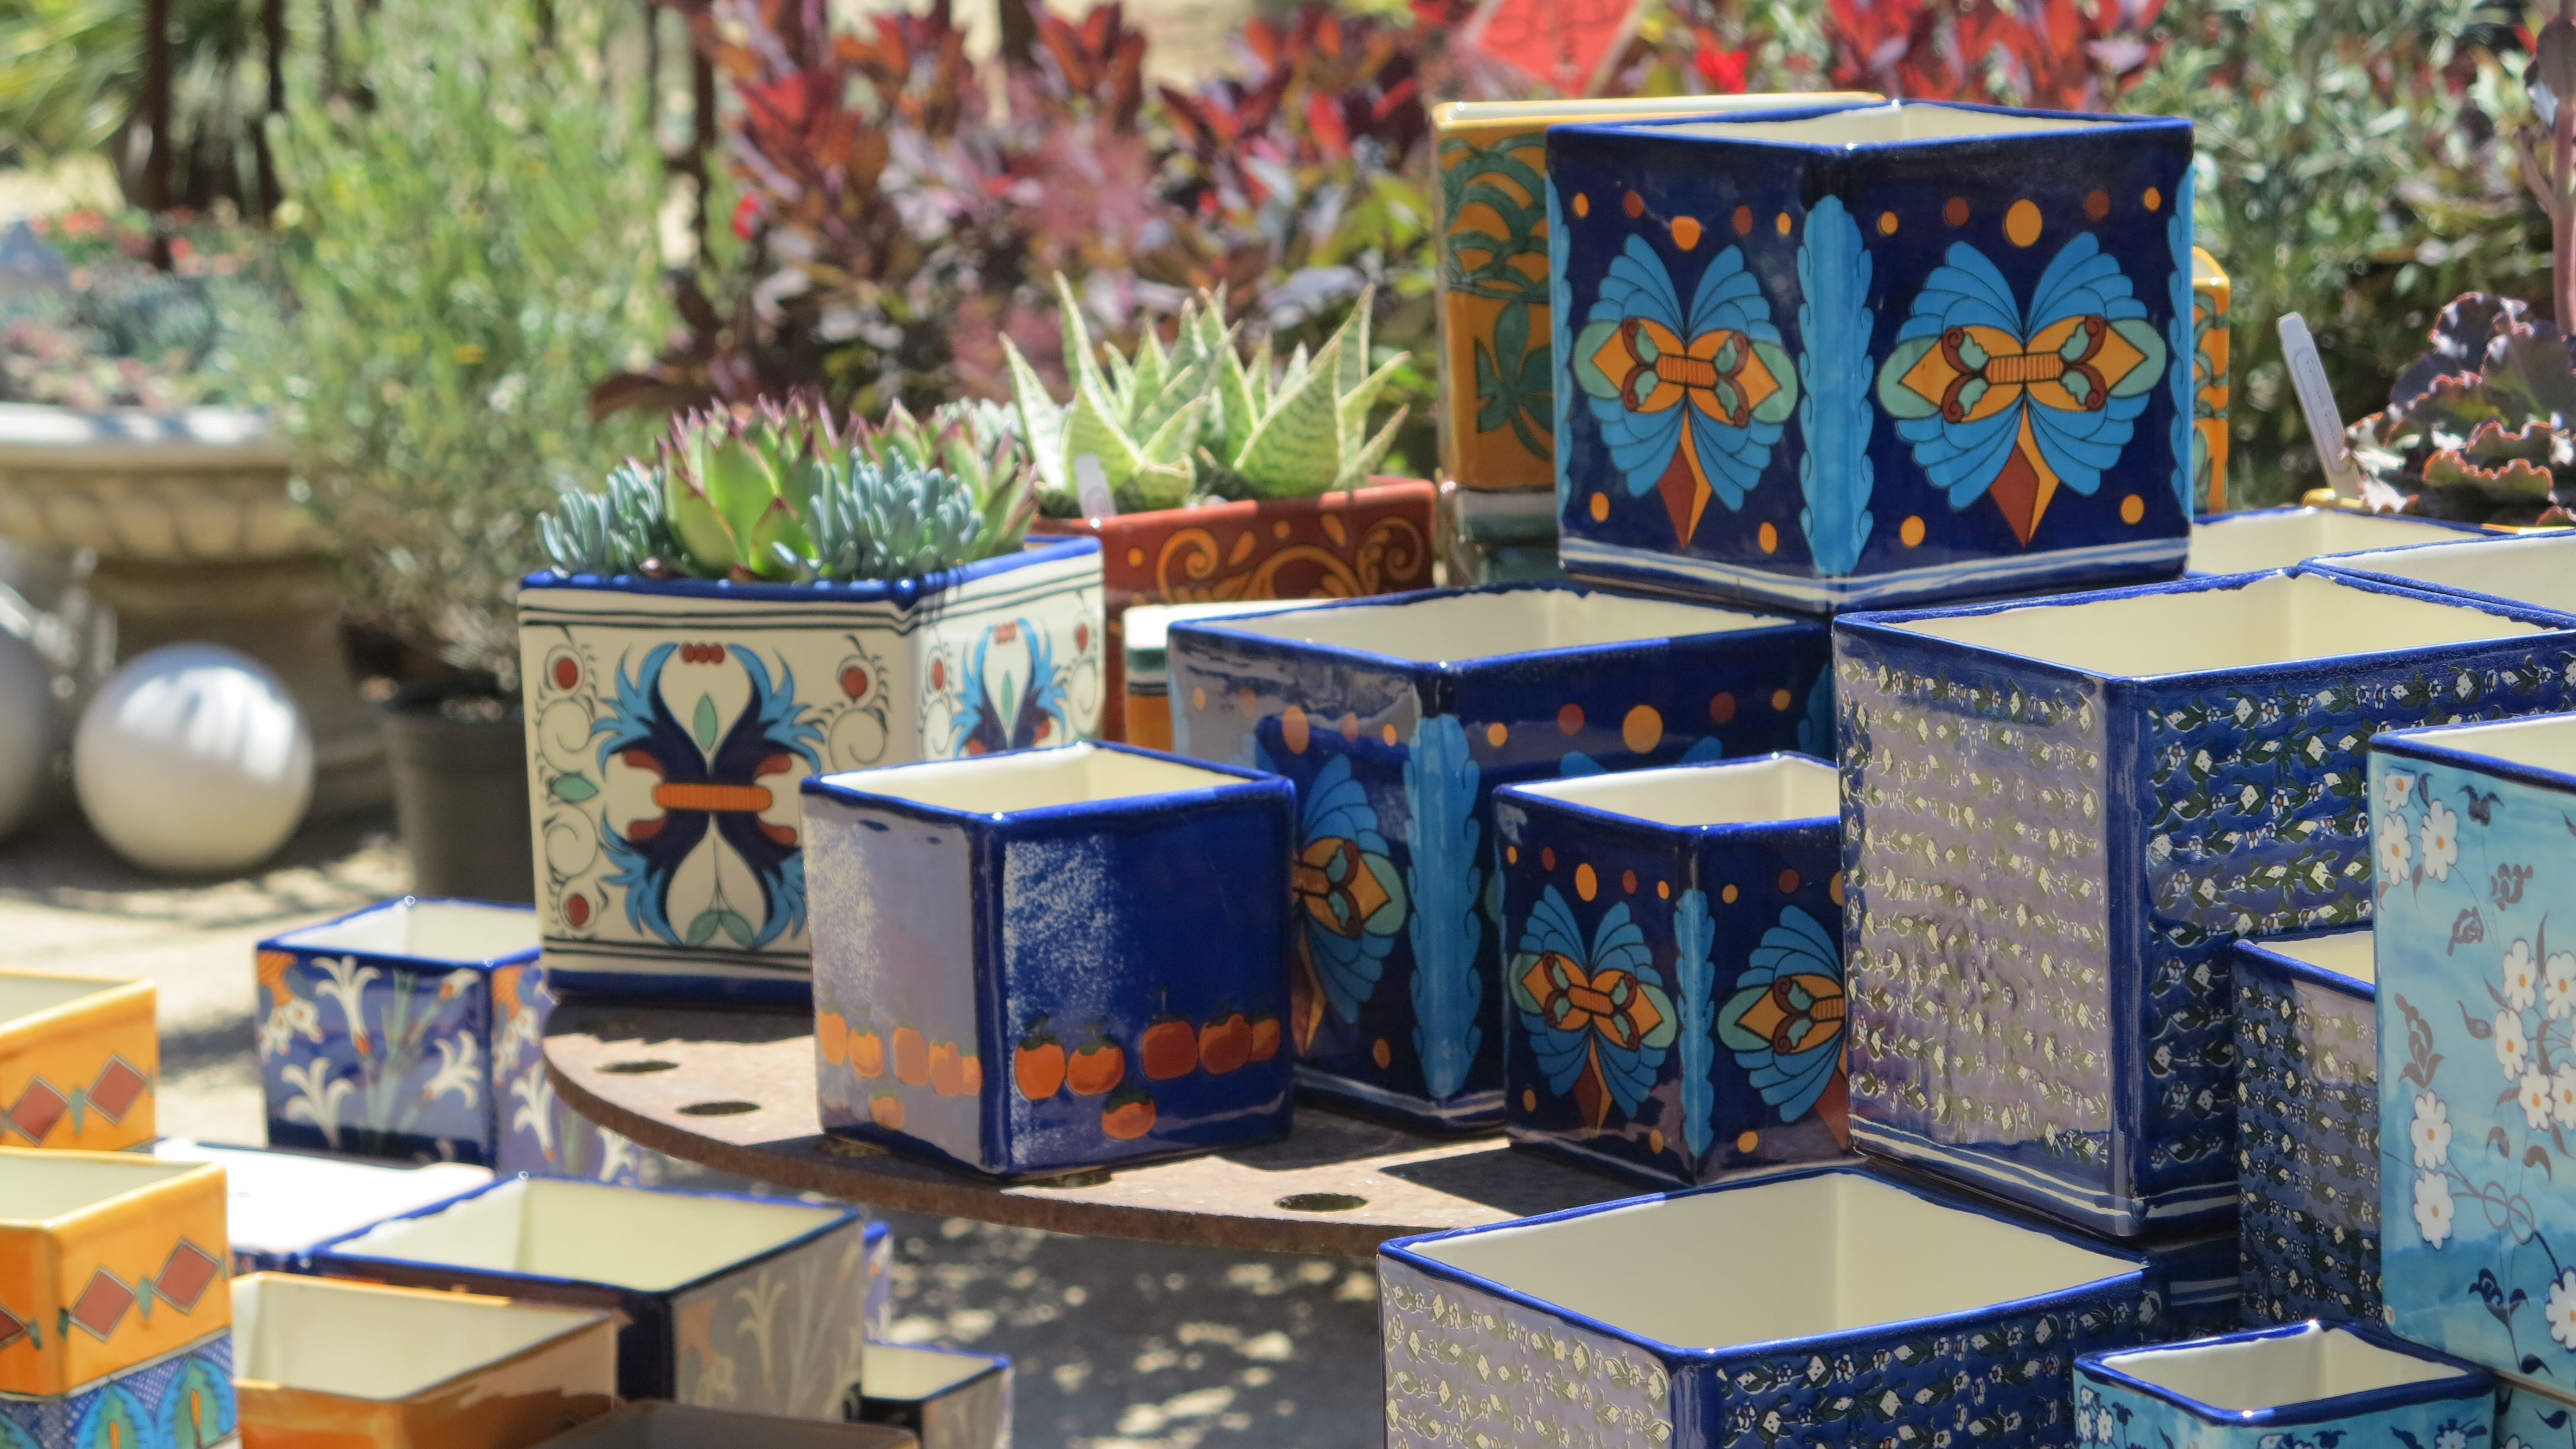 Though We Loved The Colors And Designs Of These Gorgeous Planters At Cottage  Gardens Of Petaluma, Dom And I Had Already Scored Bargain Buys Of  Intriguing ...